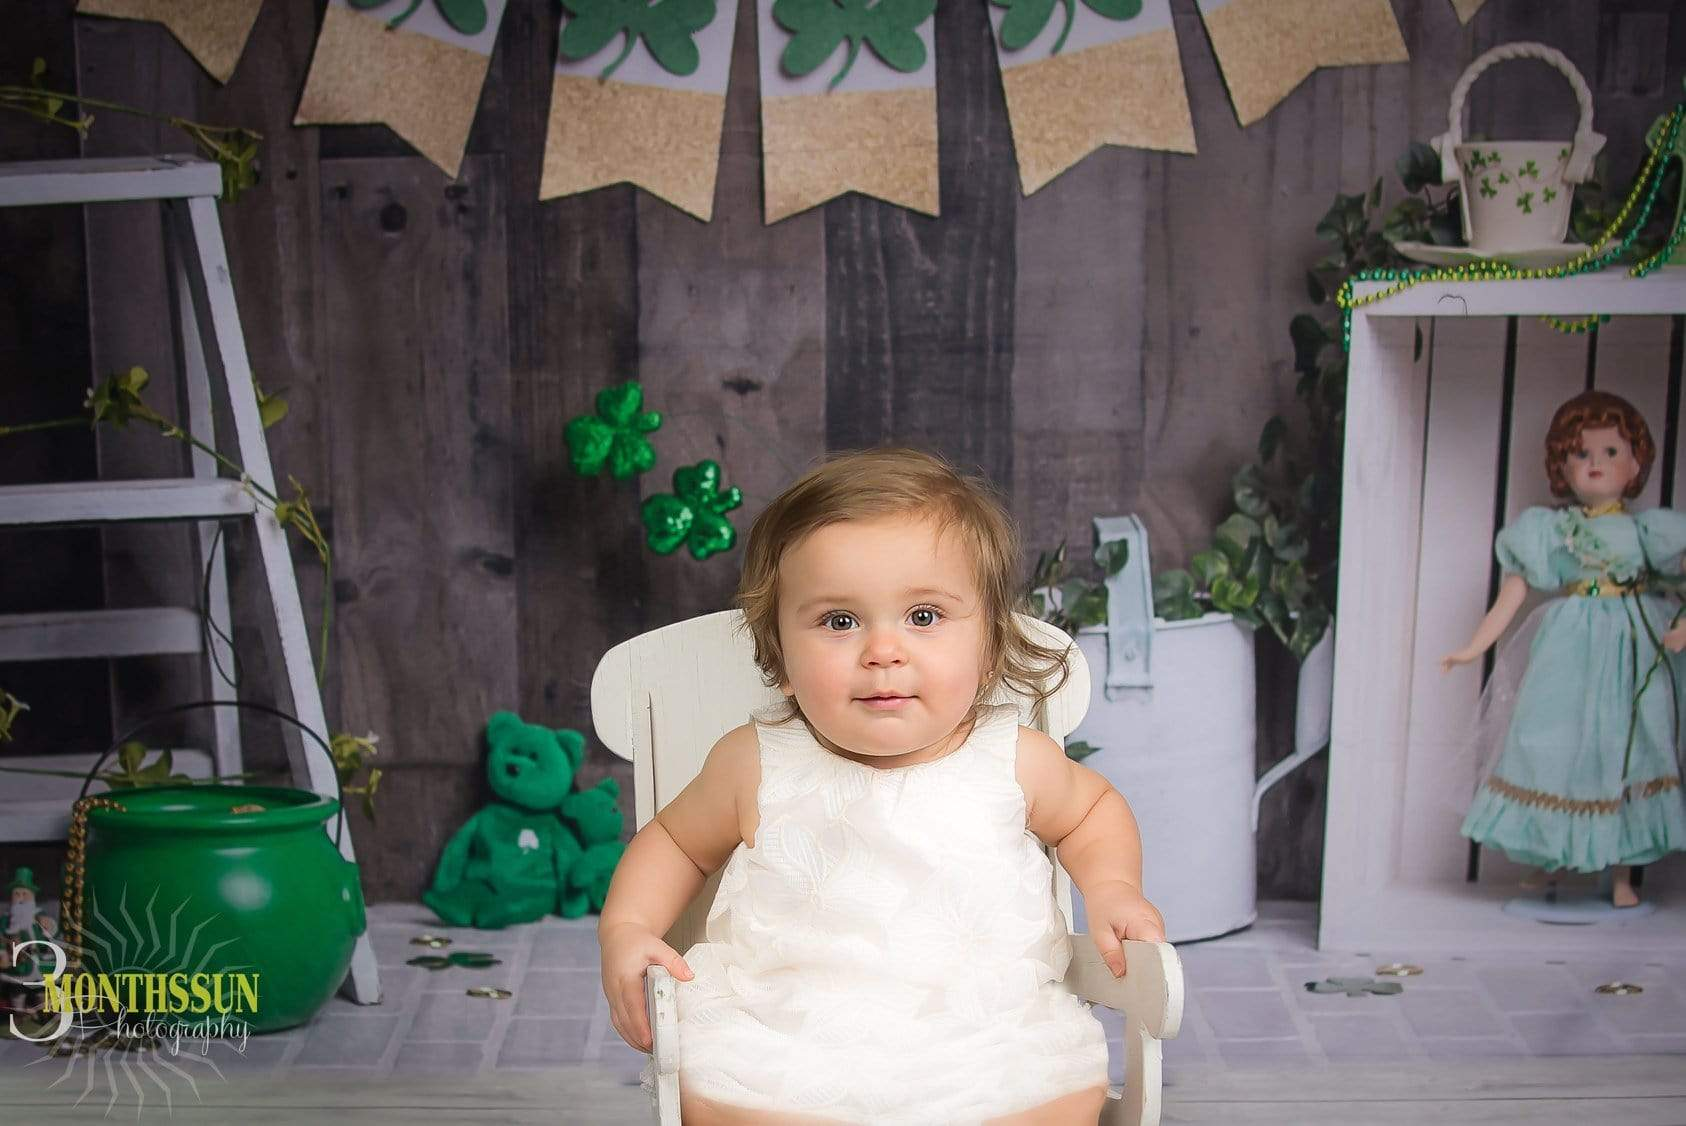 Load image into Gallery viewer, Kate Wood Wall with Banners St.Patrick's Day Backdrop for Photography Designed by Erin Larkins